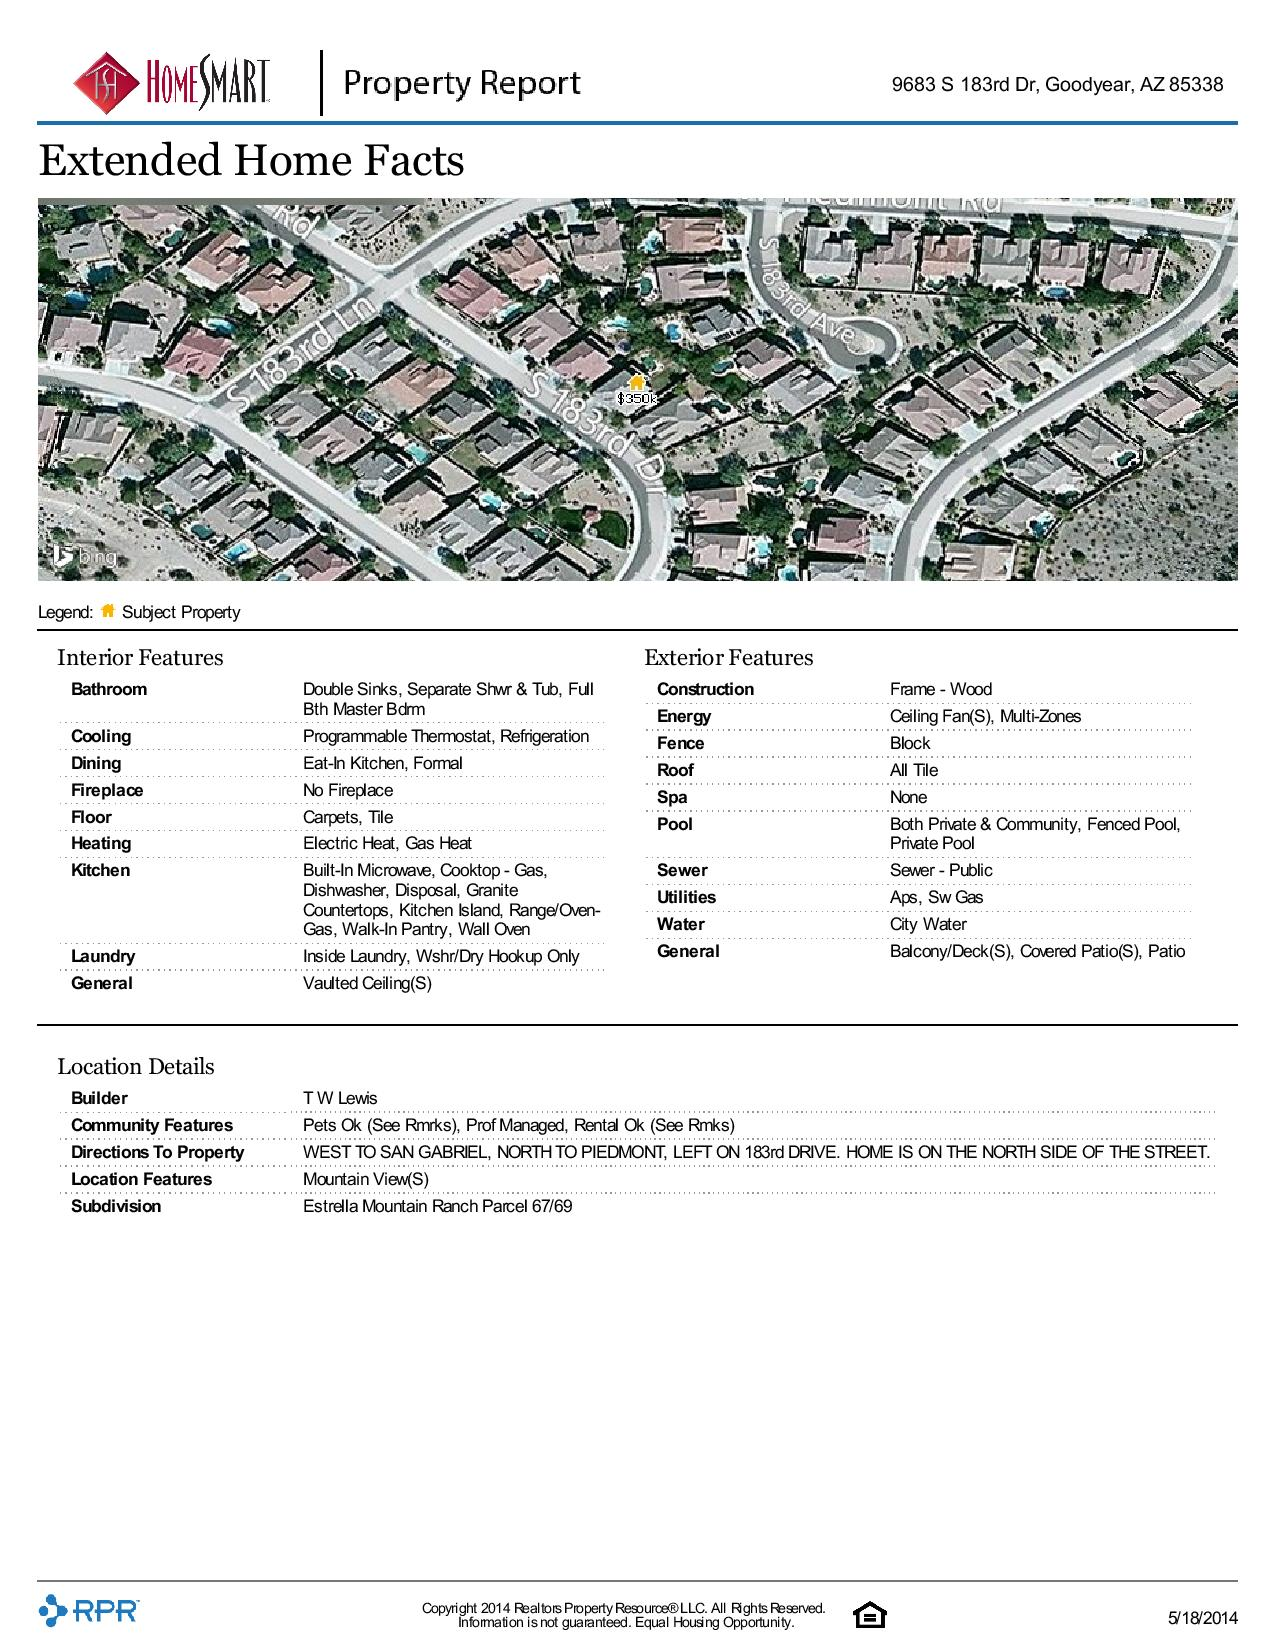 9683-S-183rd-Dr-Goodyear-AZ-85338-page-004